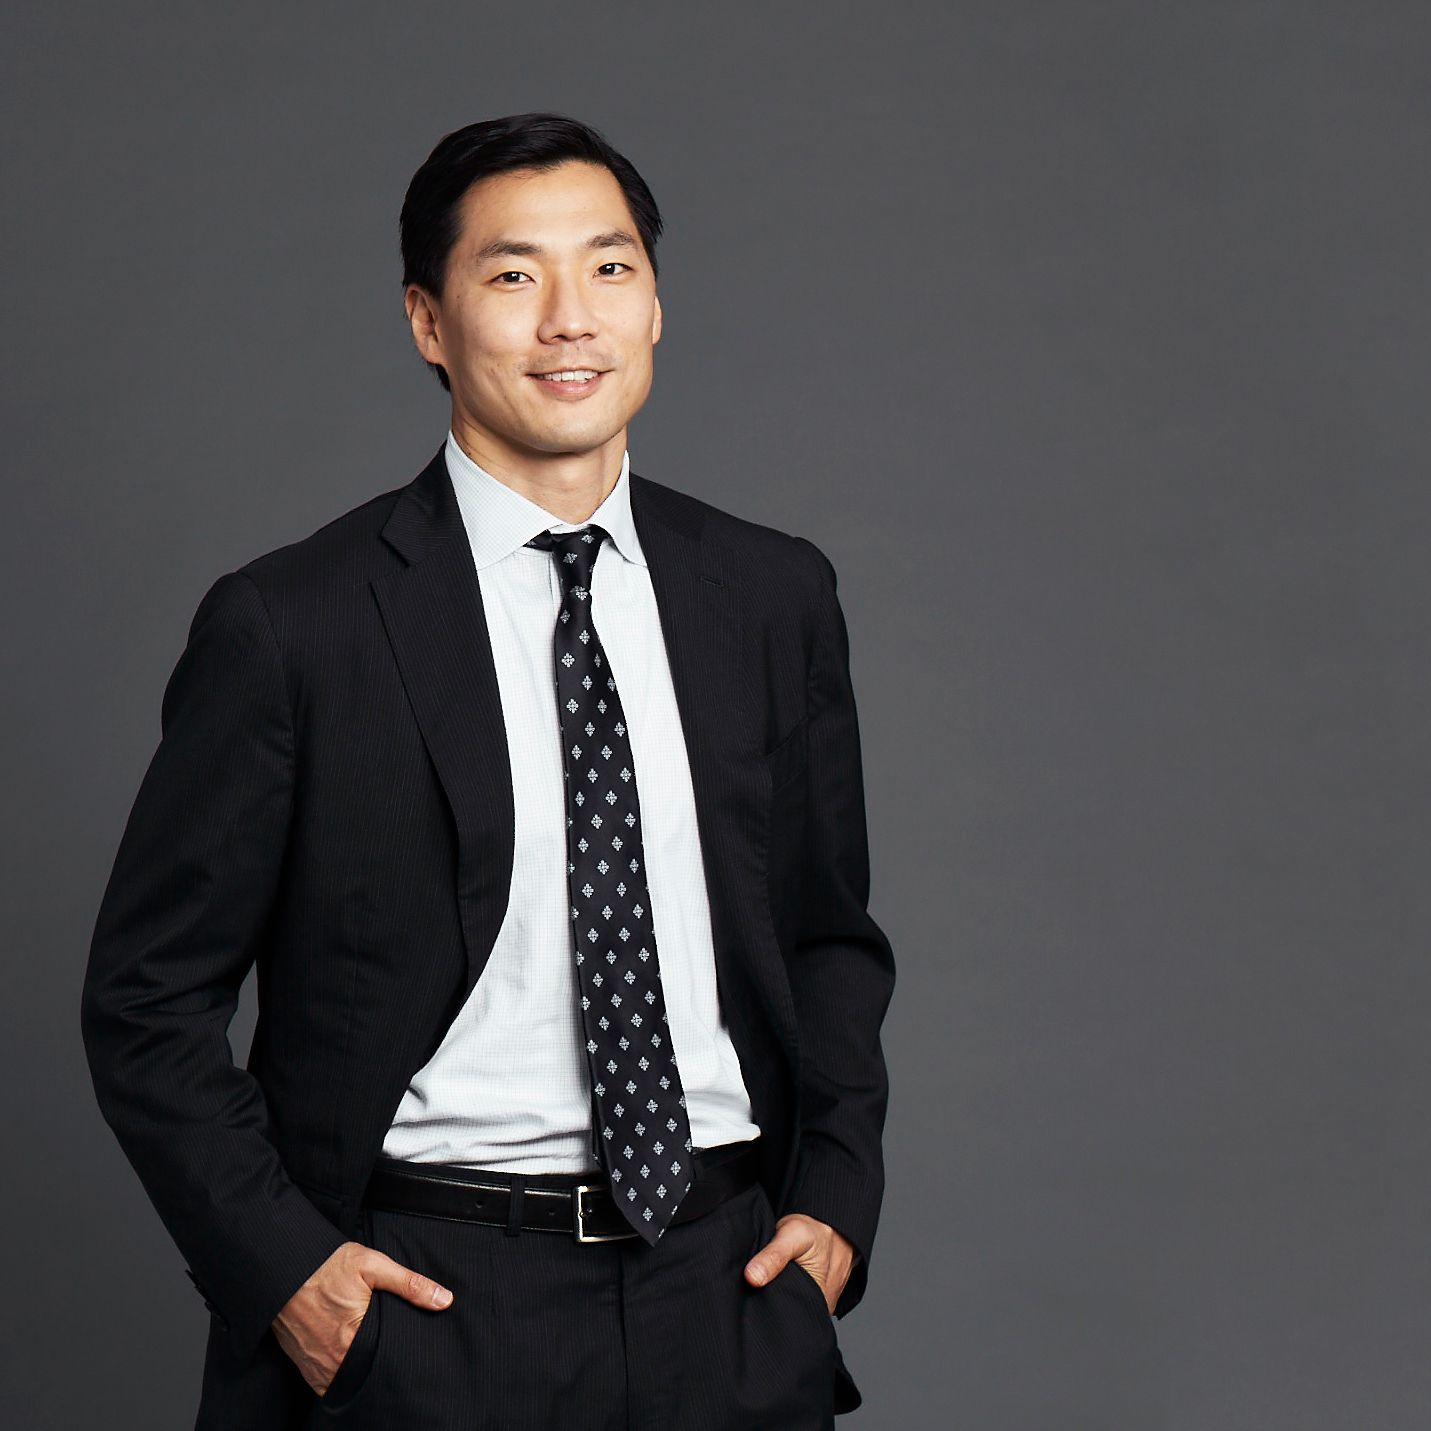 RESEARCHER / Andrew Chi